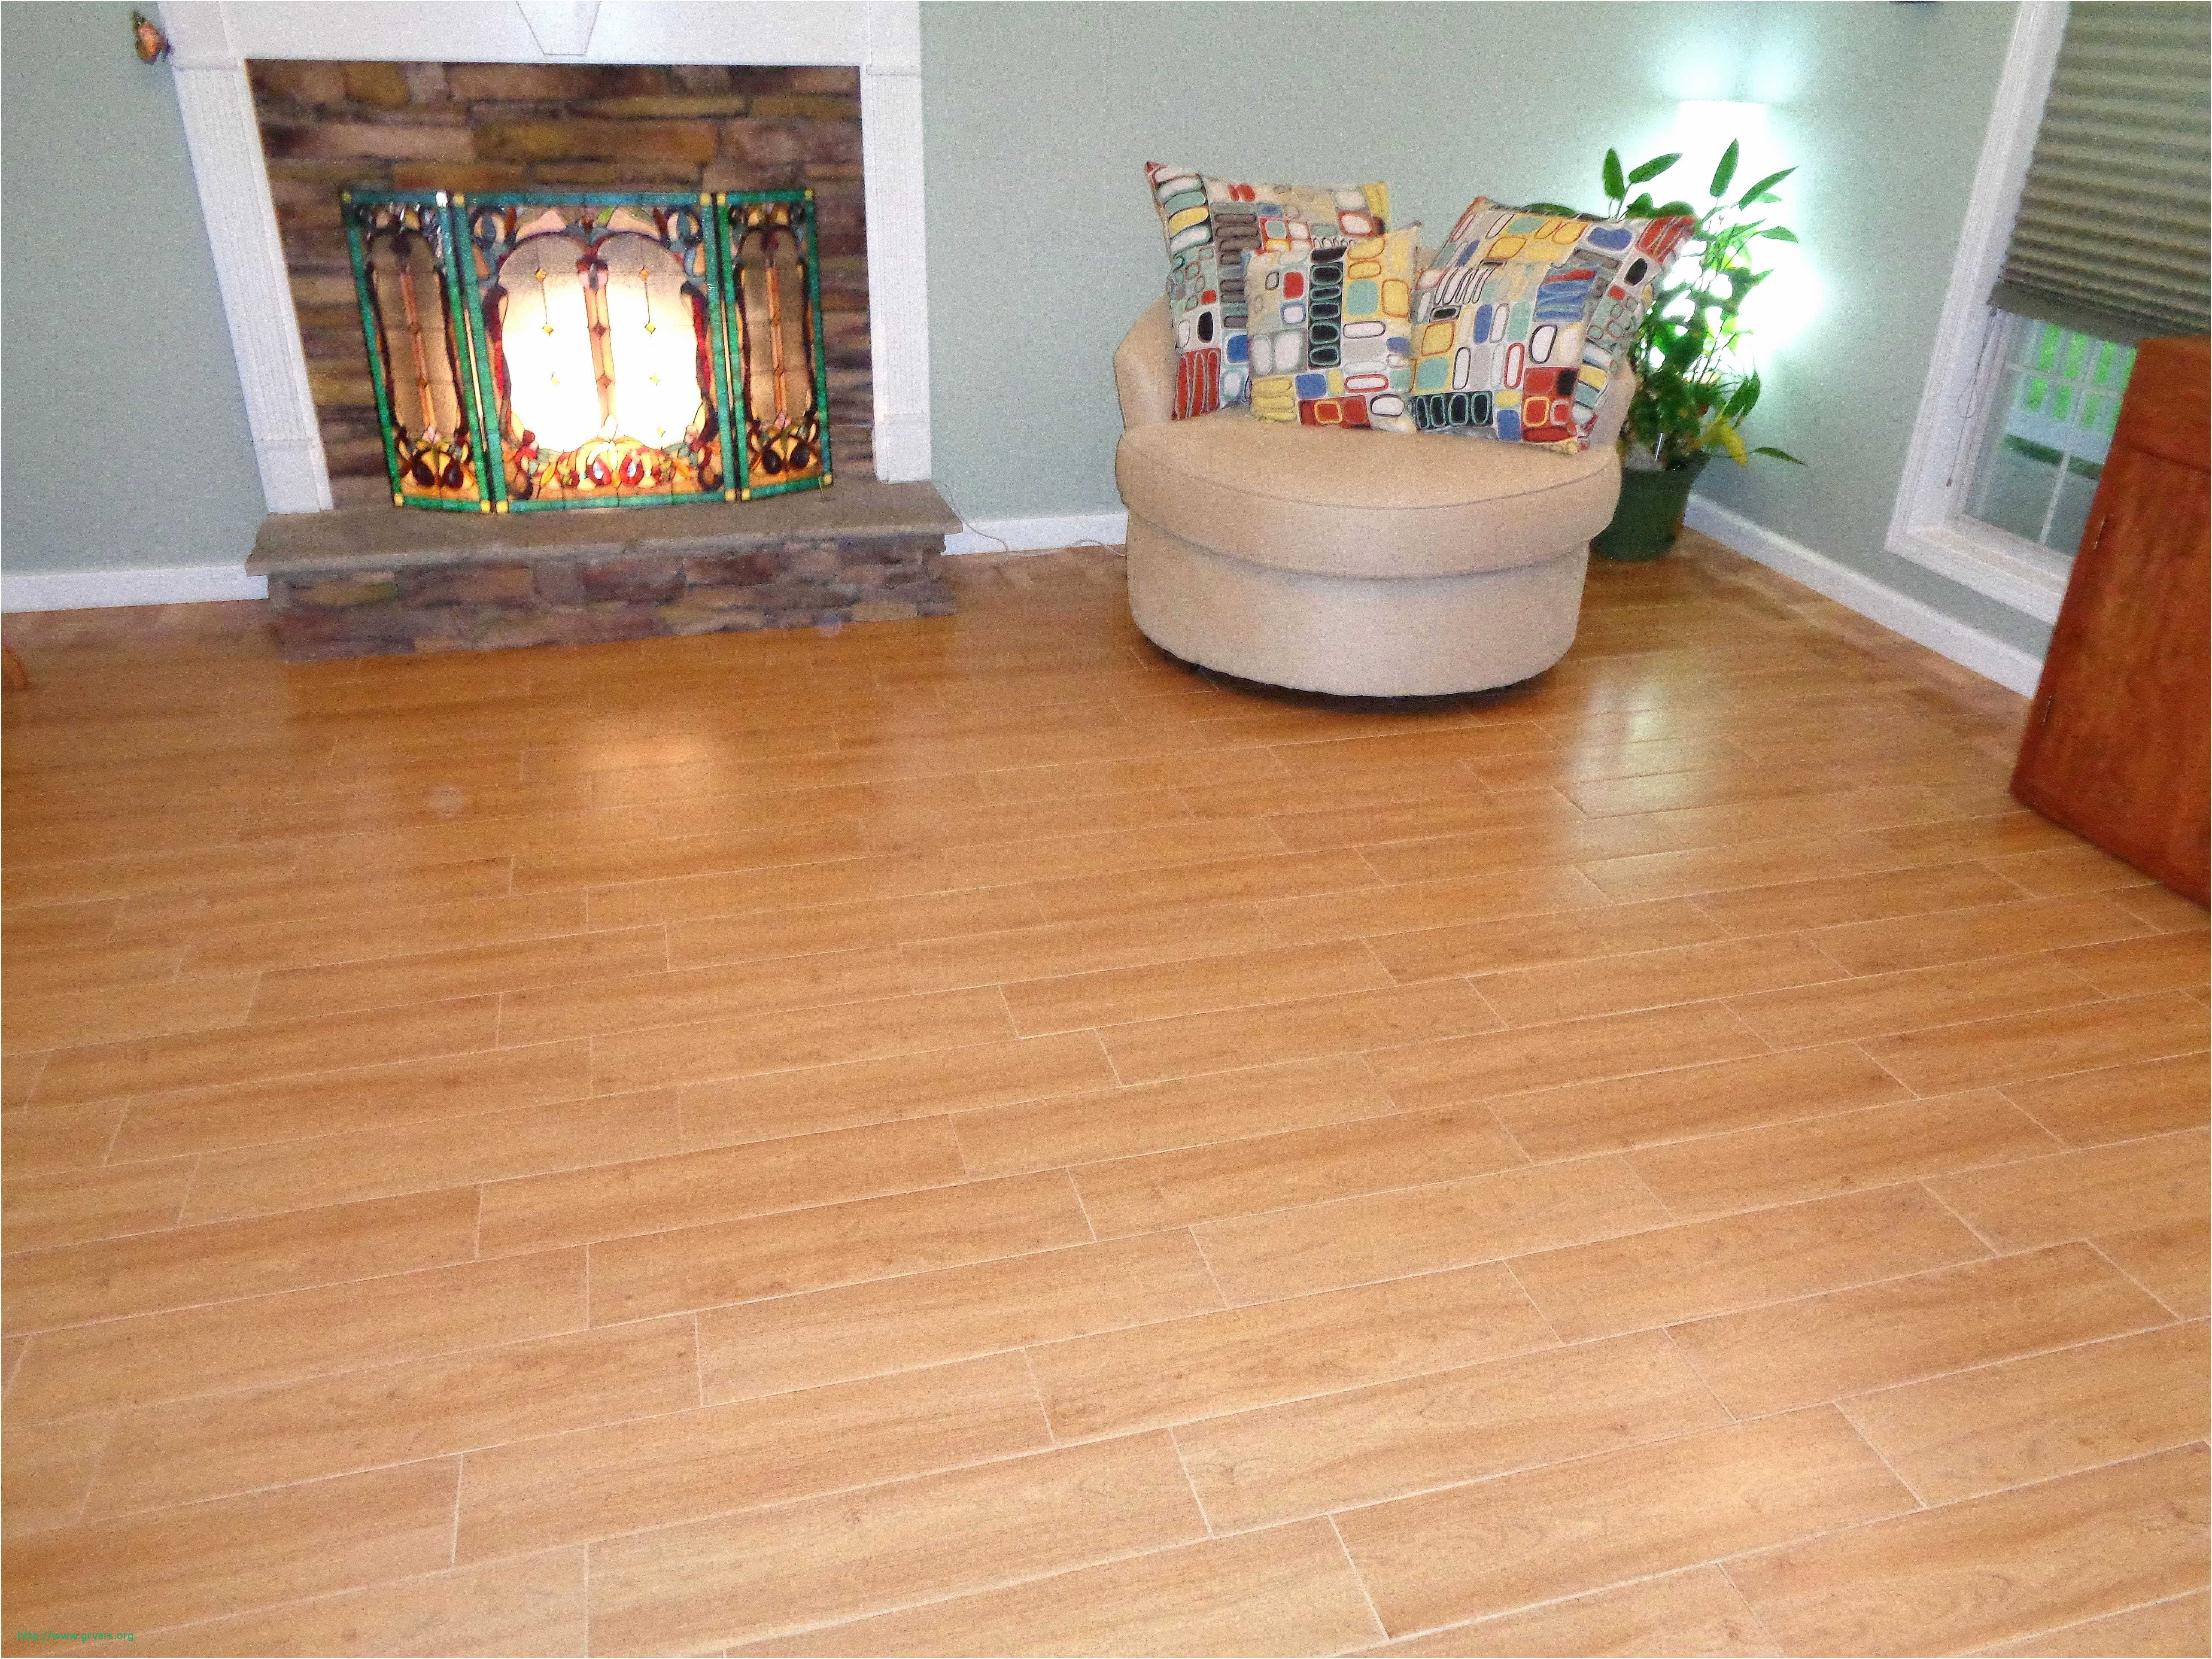 25 attractive Hardwood Flooring Unfinished Prices 2021 free download hardwood flooring unfinished prices of 21 inspirant best prices for laminate wood flooring ideas blog in best prices for laminate wood flooring charmant pergo flooring colors